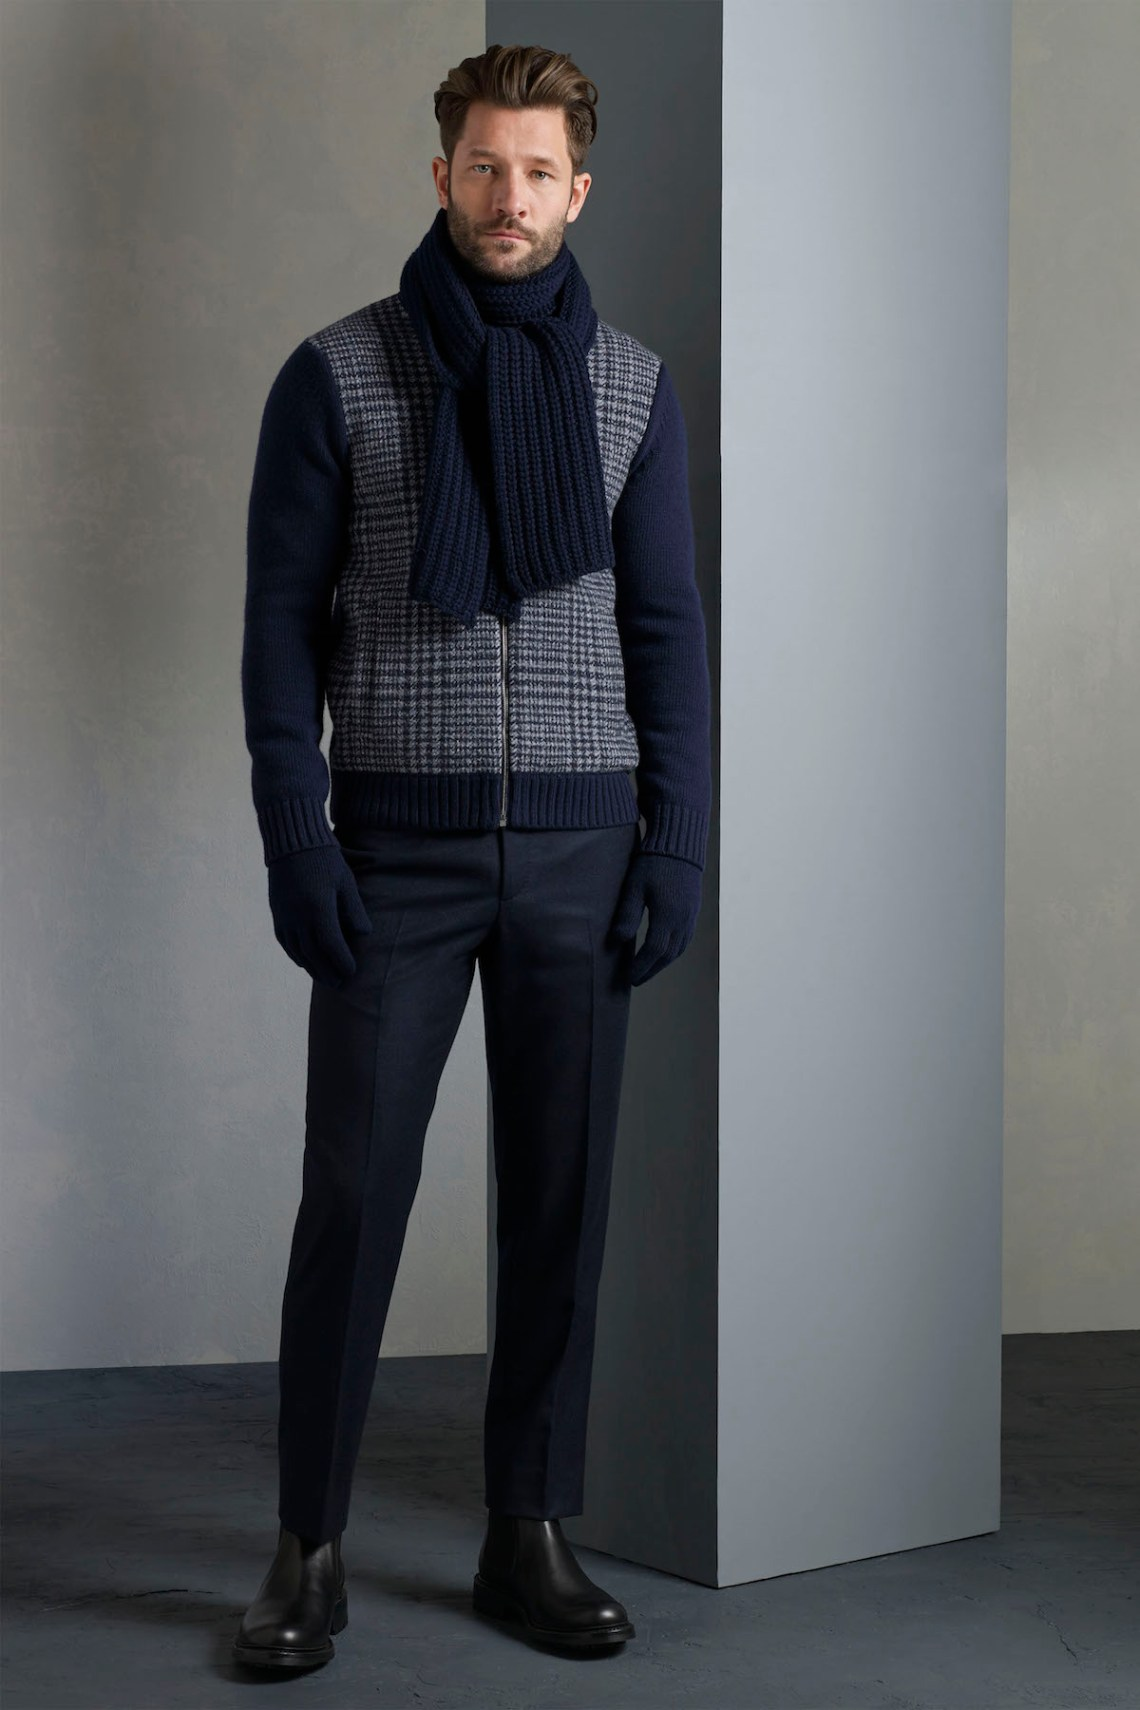 GIEVES & HAWKES - Fall Winter 2016/17